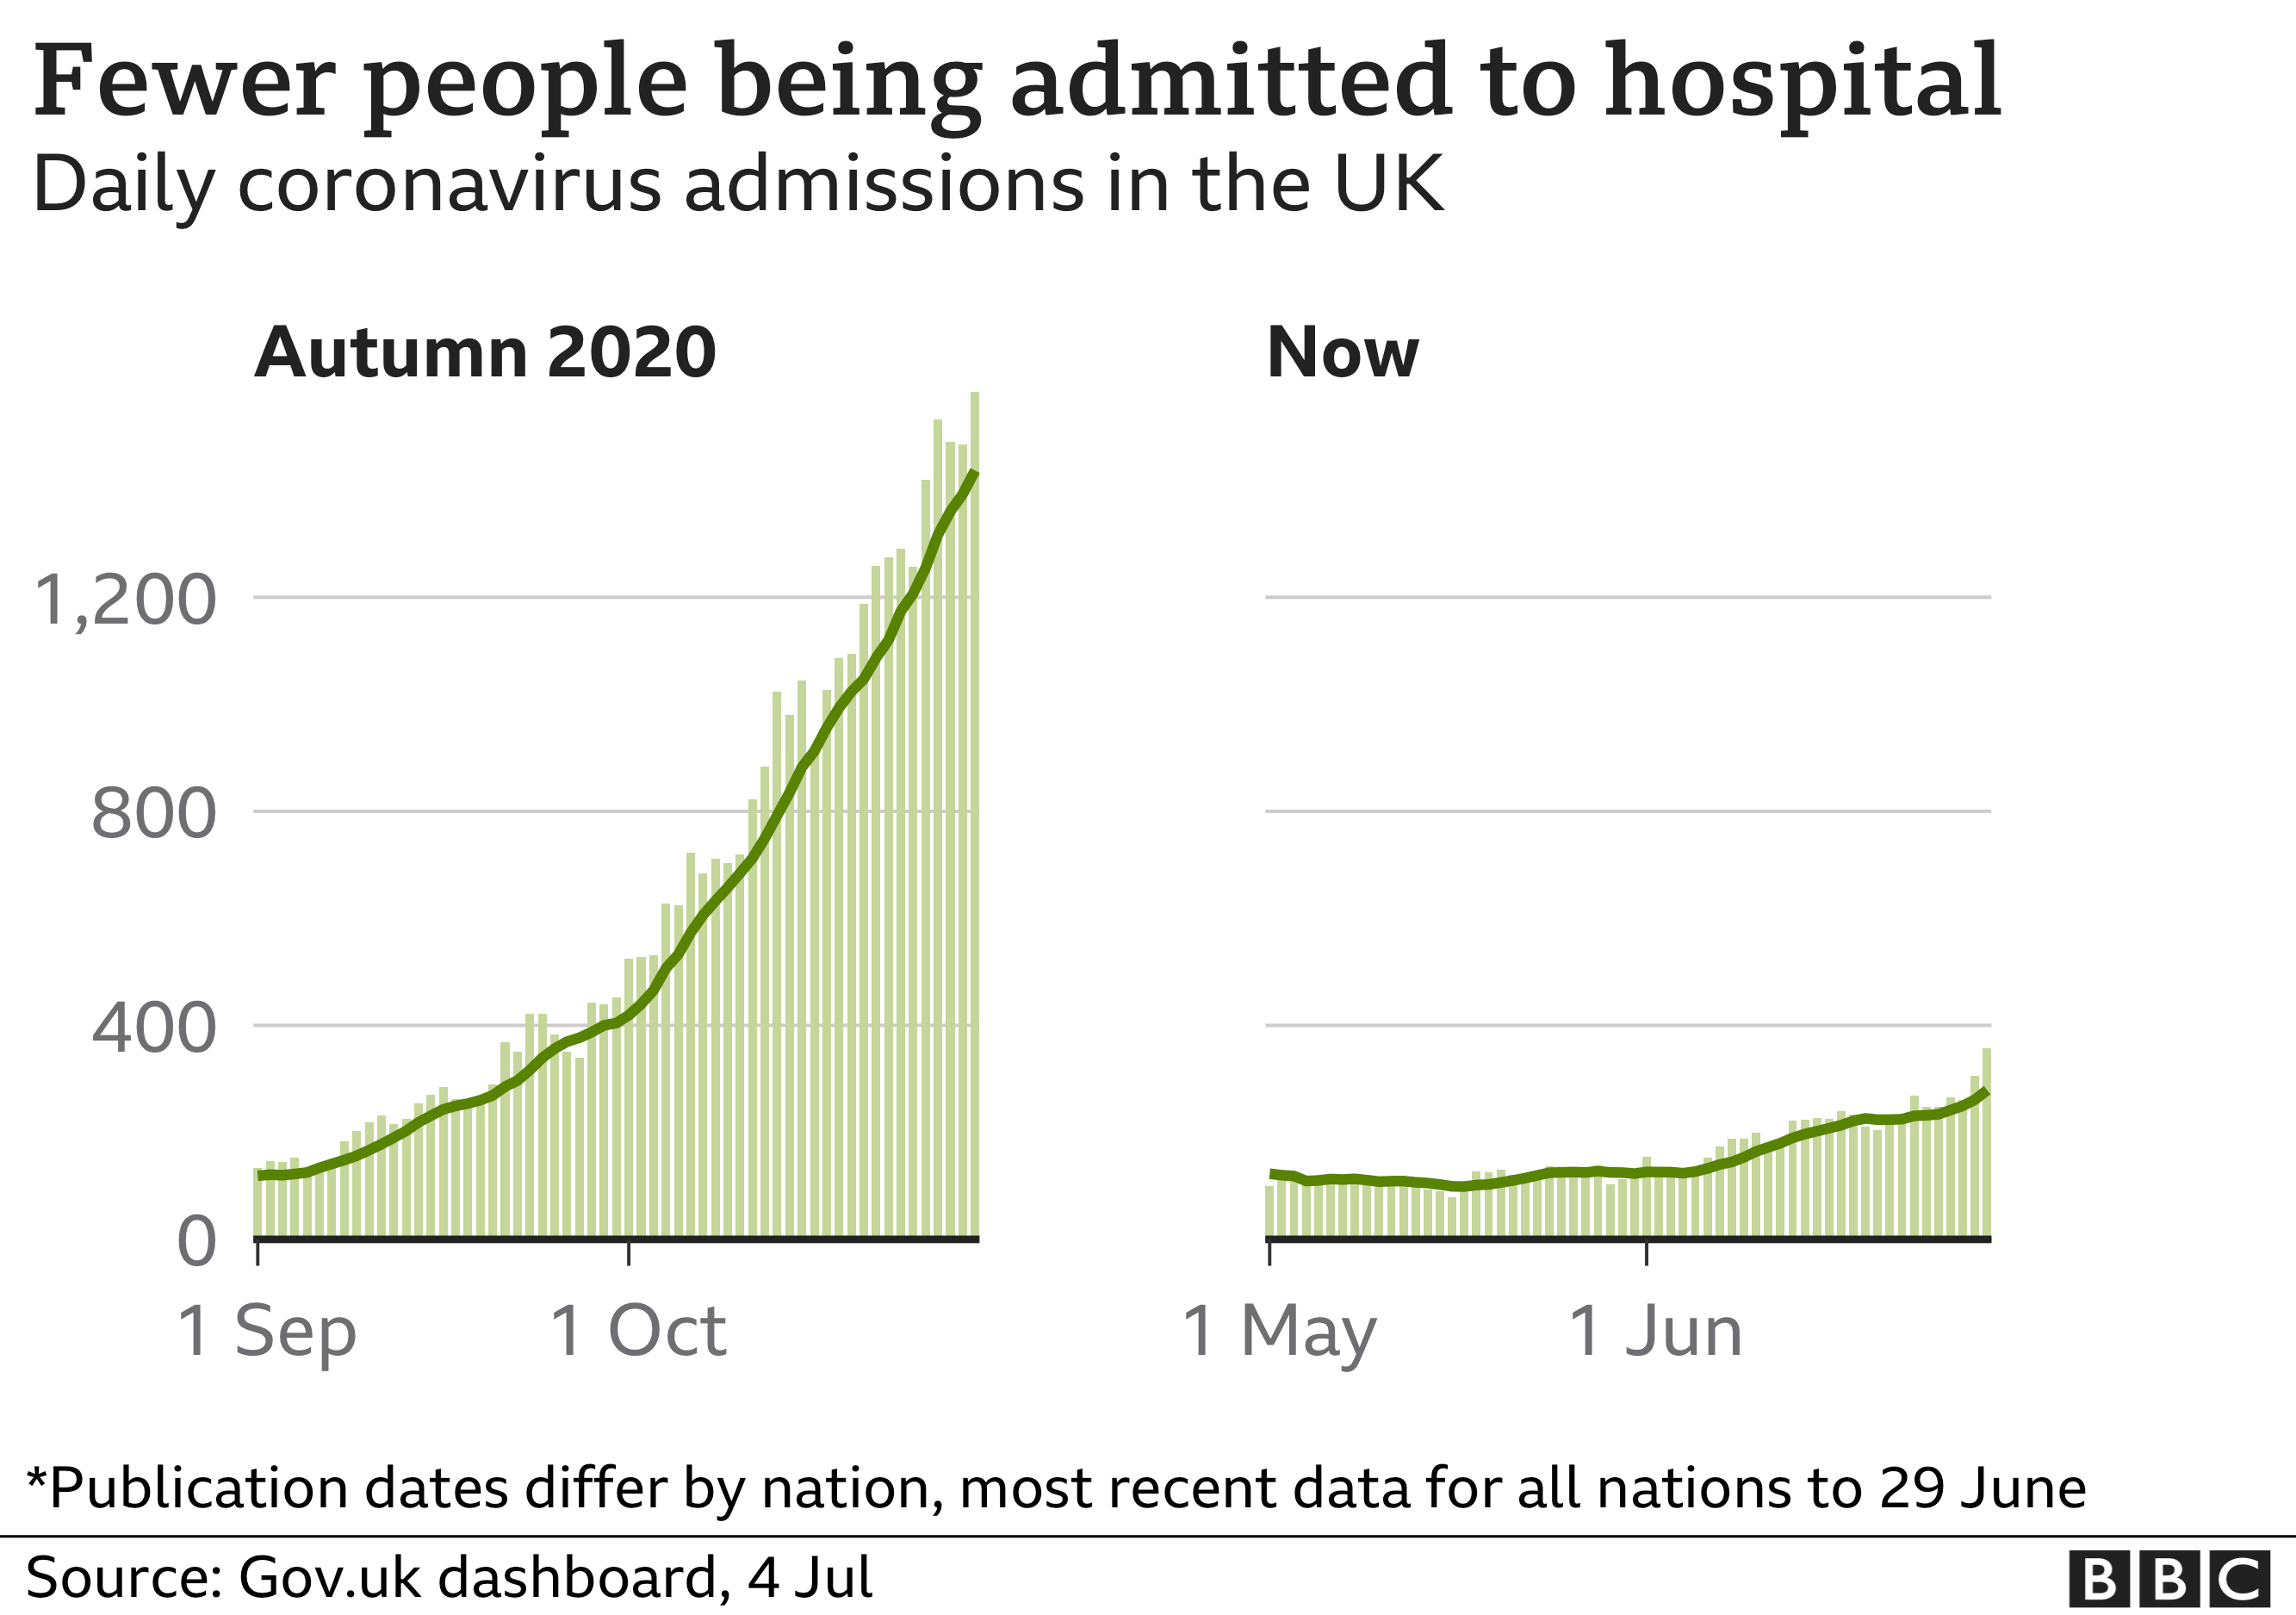 Chart comparing the current rate of hospitalisations to the rate in autumn last year